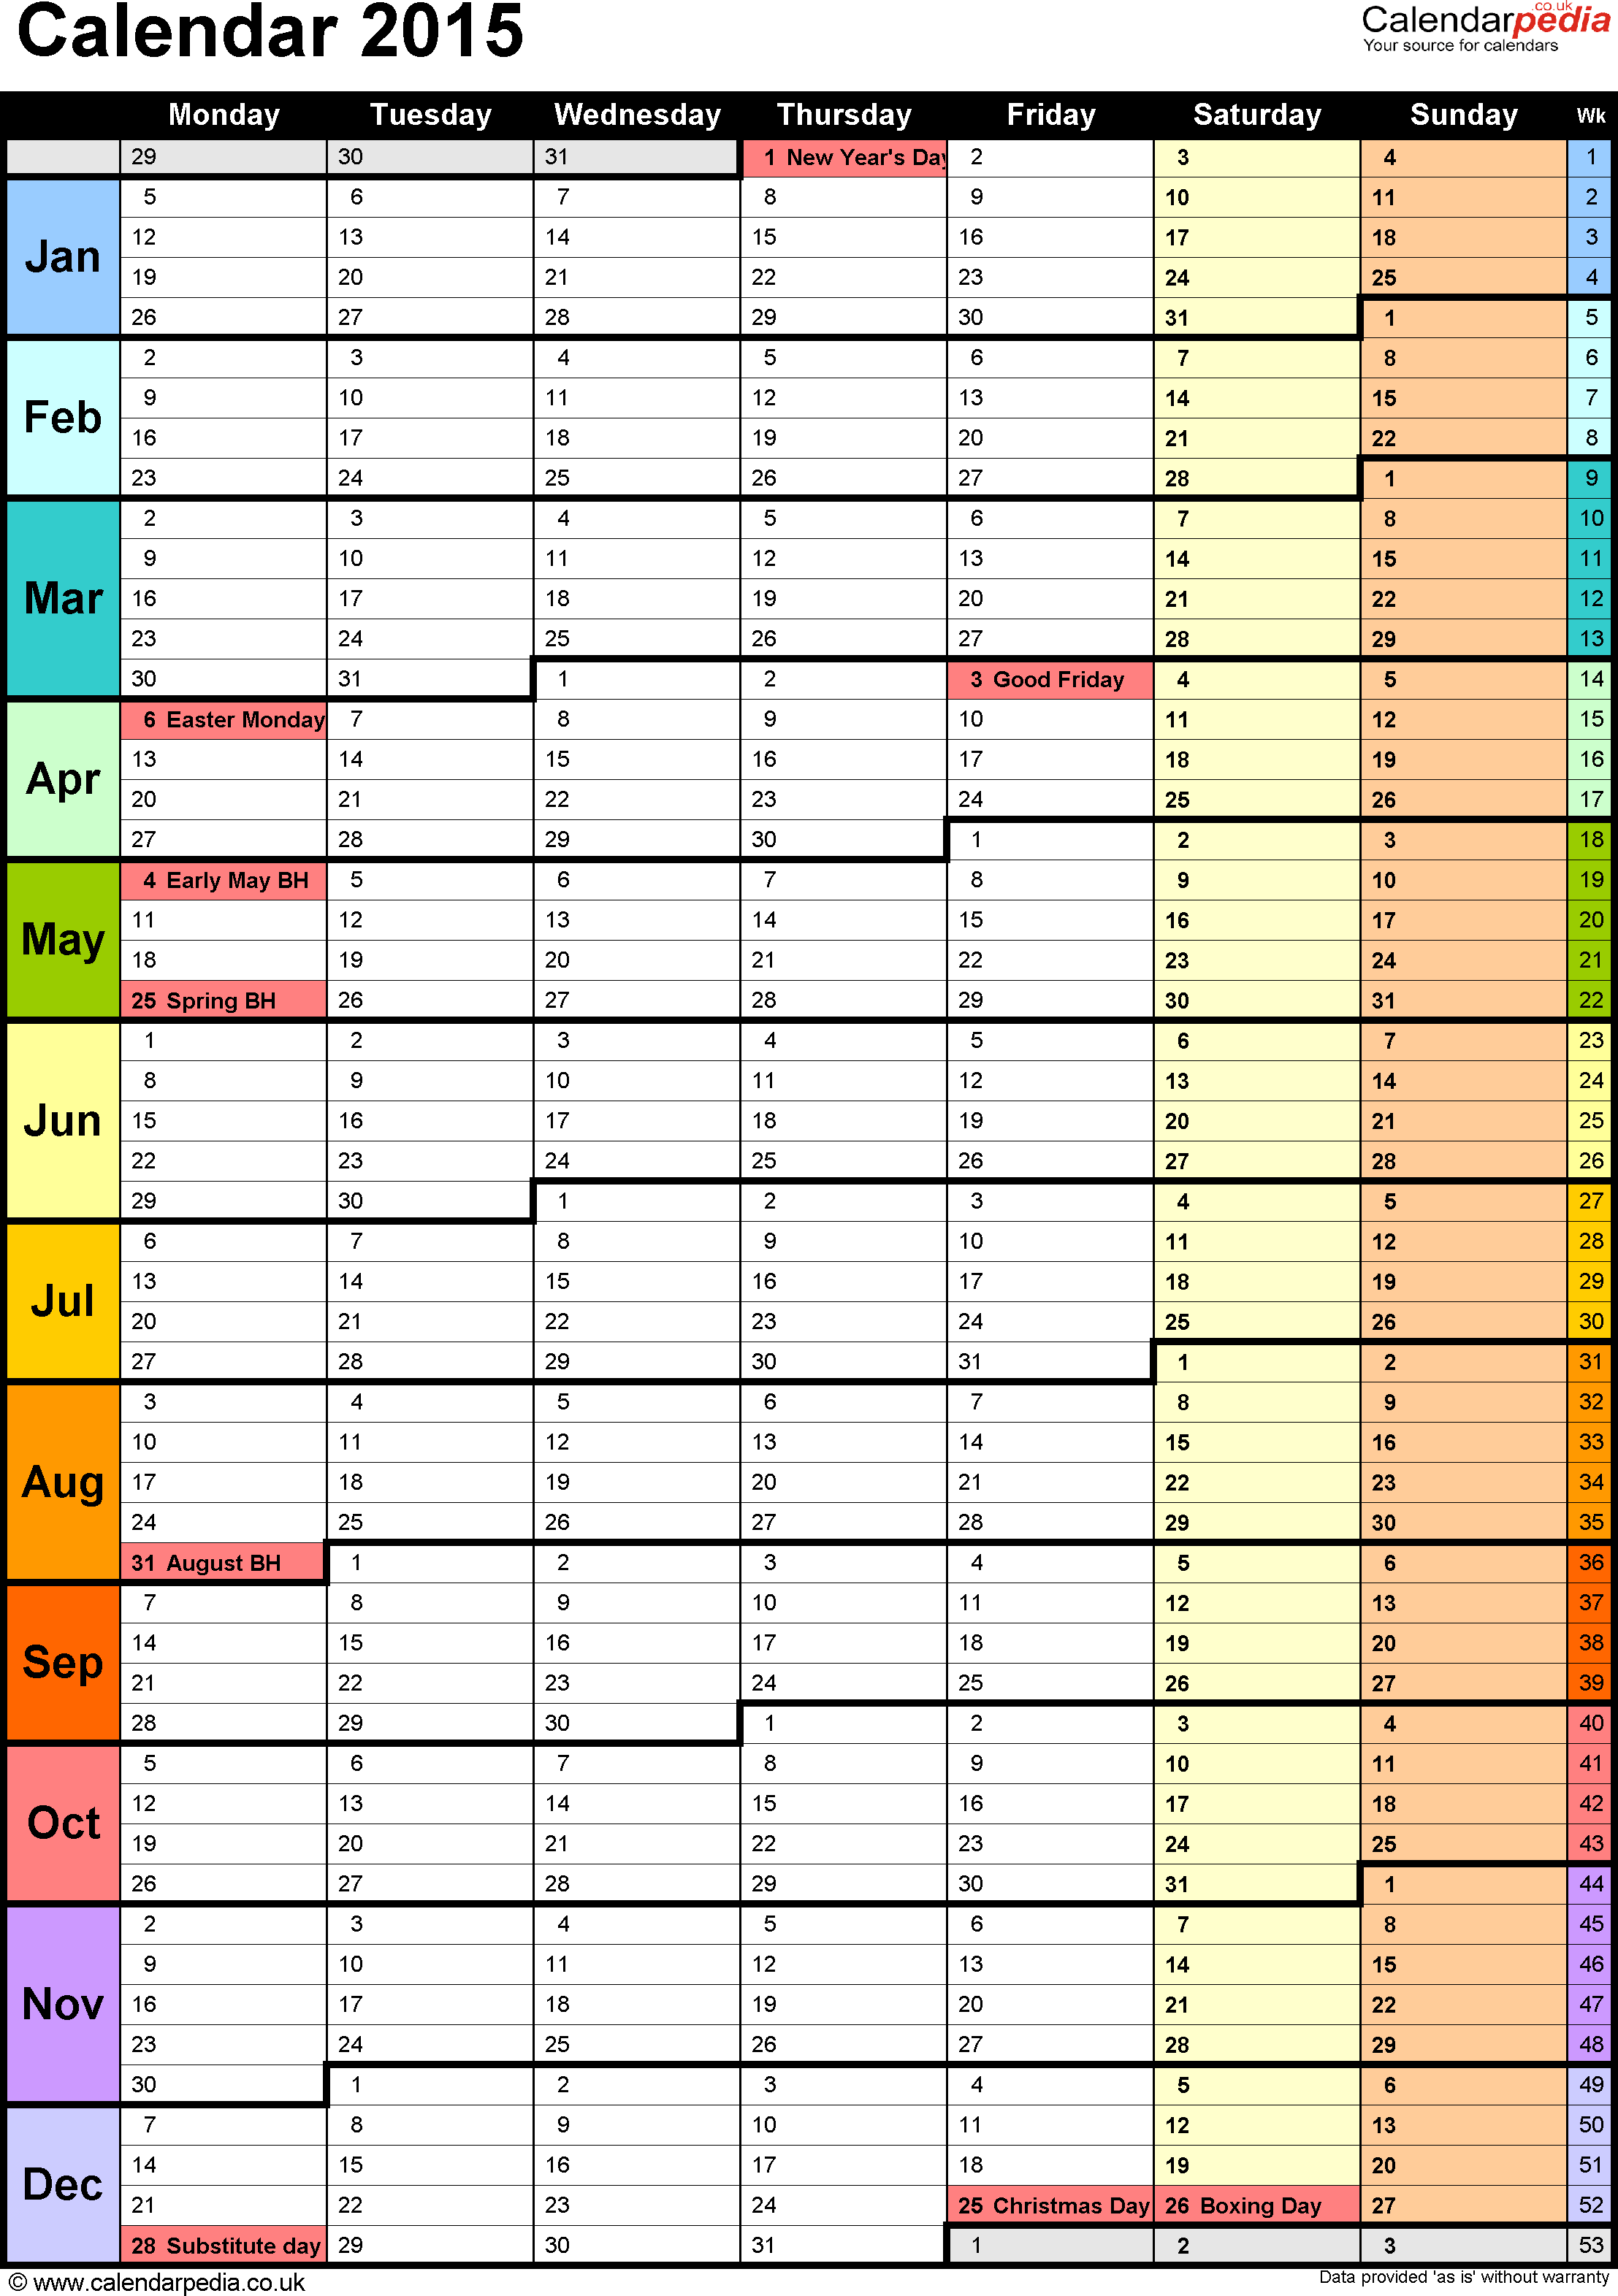 Template 15: Yearly calendar 2015 as PDF template, portrait orientation, 1 page, with UK bank holidays and week numbers, days in continuous flow/rolling layout